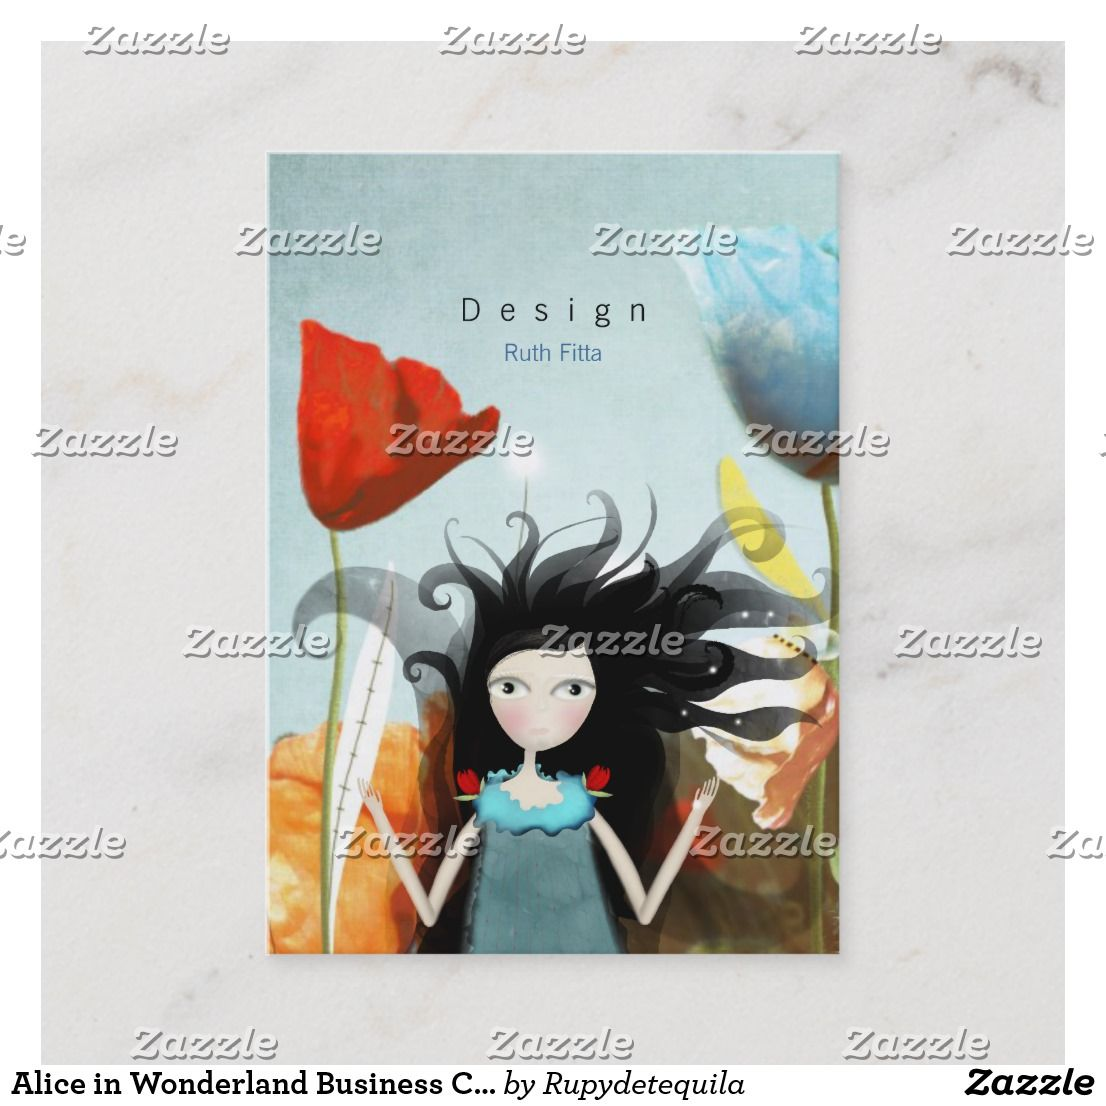 Alice In Wonderland Business Cards RUPYDETEQUILA Ruth Fitta Schulz Well Handmade Illustrations And Design For Awesome People Zazzle Artsprojekt Poppy